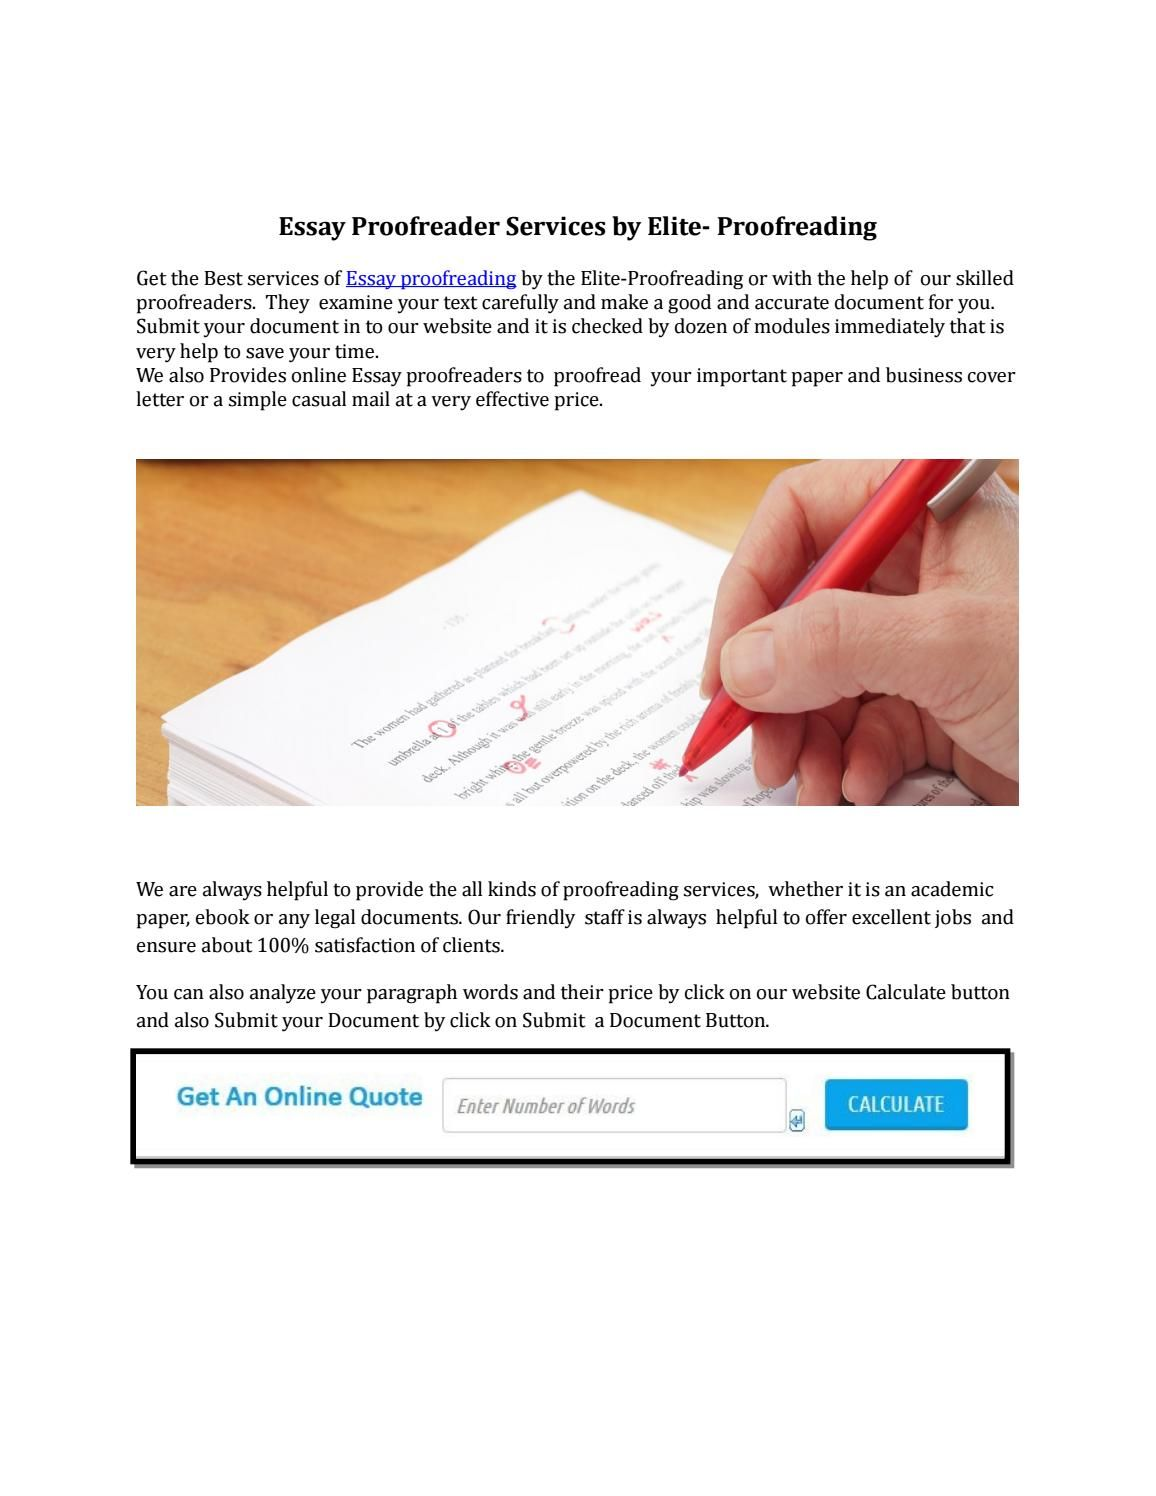 Essay proofreader | Essay Proofreaders | Pinterest